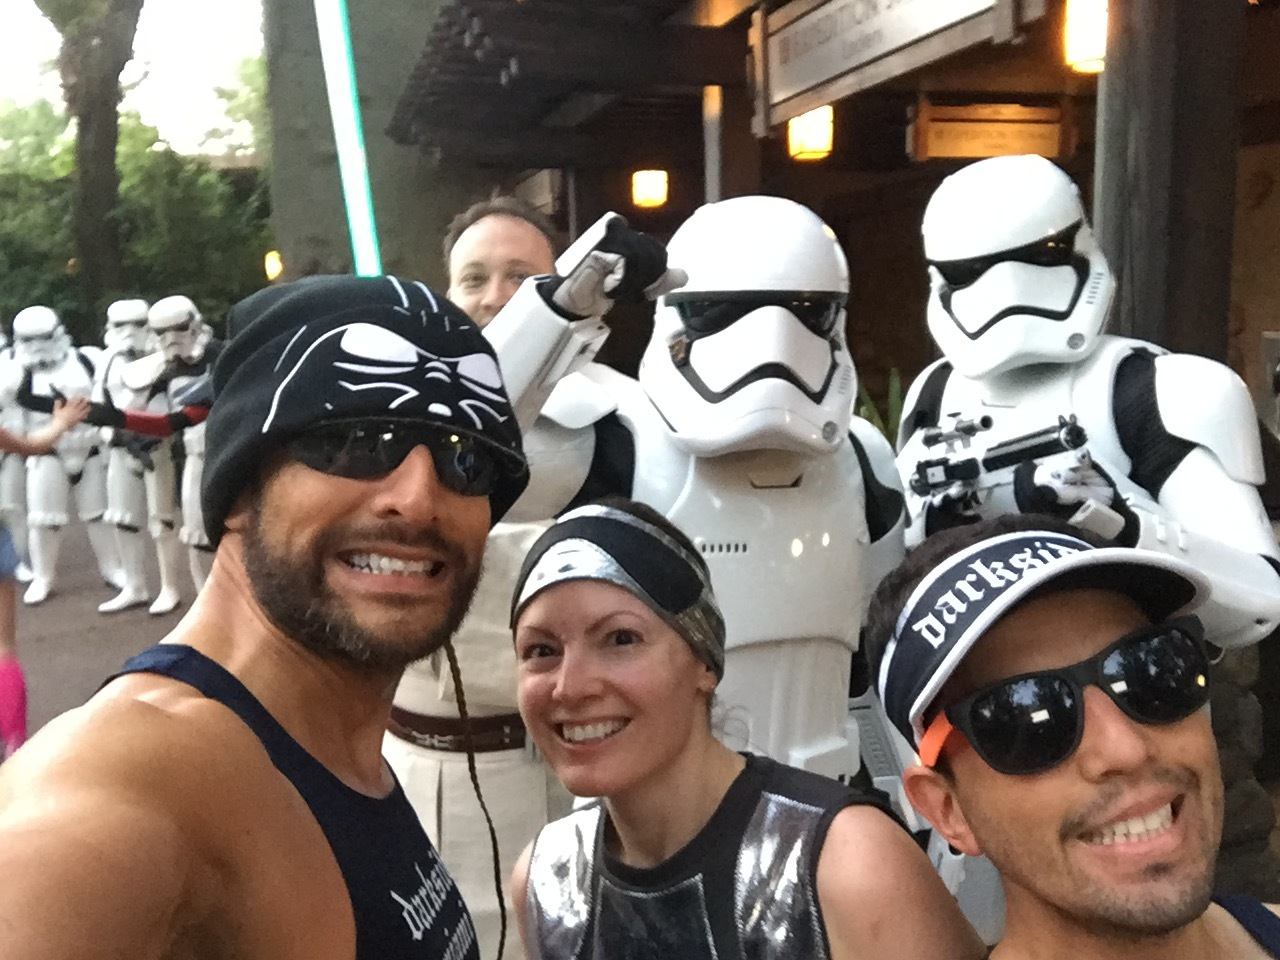 RUN FOR THE EMPIRE, RUN FOR THE FIRST ORDER!!!